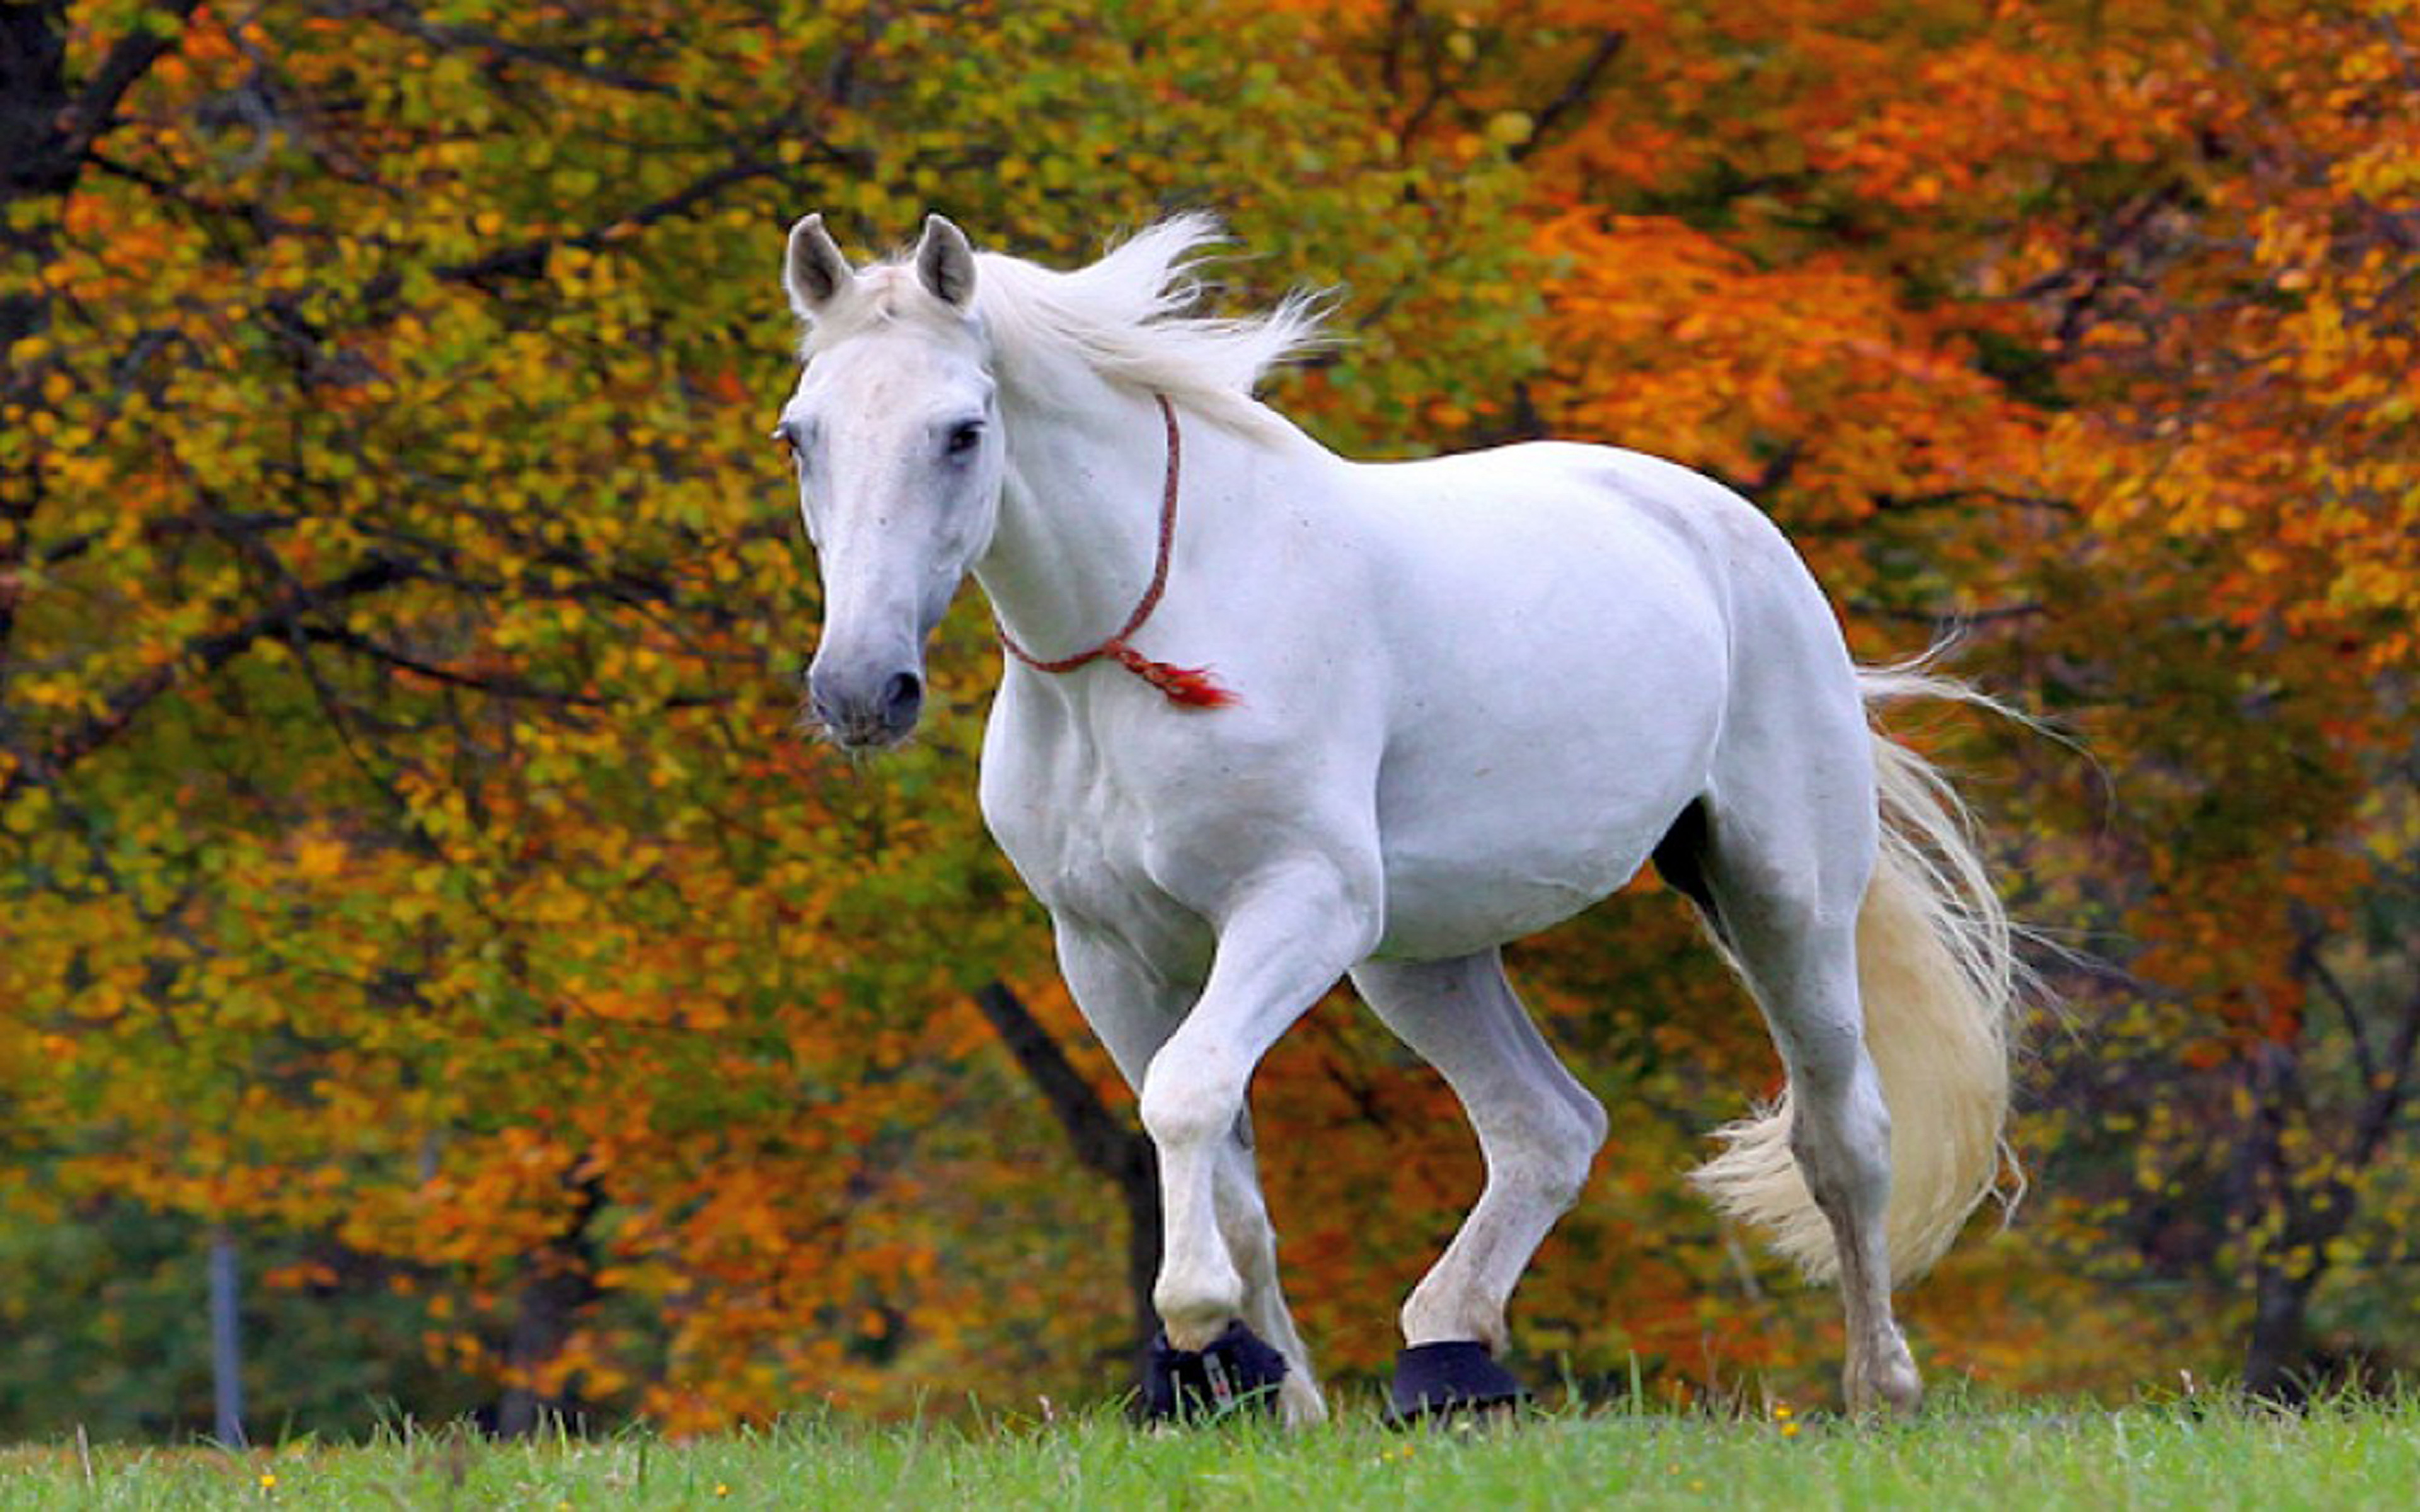 Download Original Resolution Most Beautiful White Horse In The